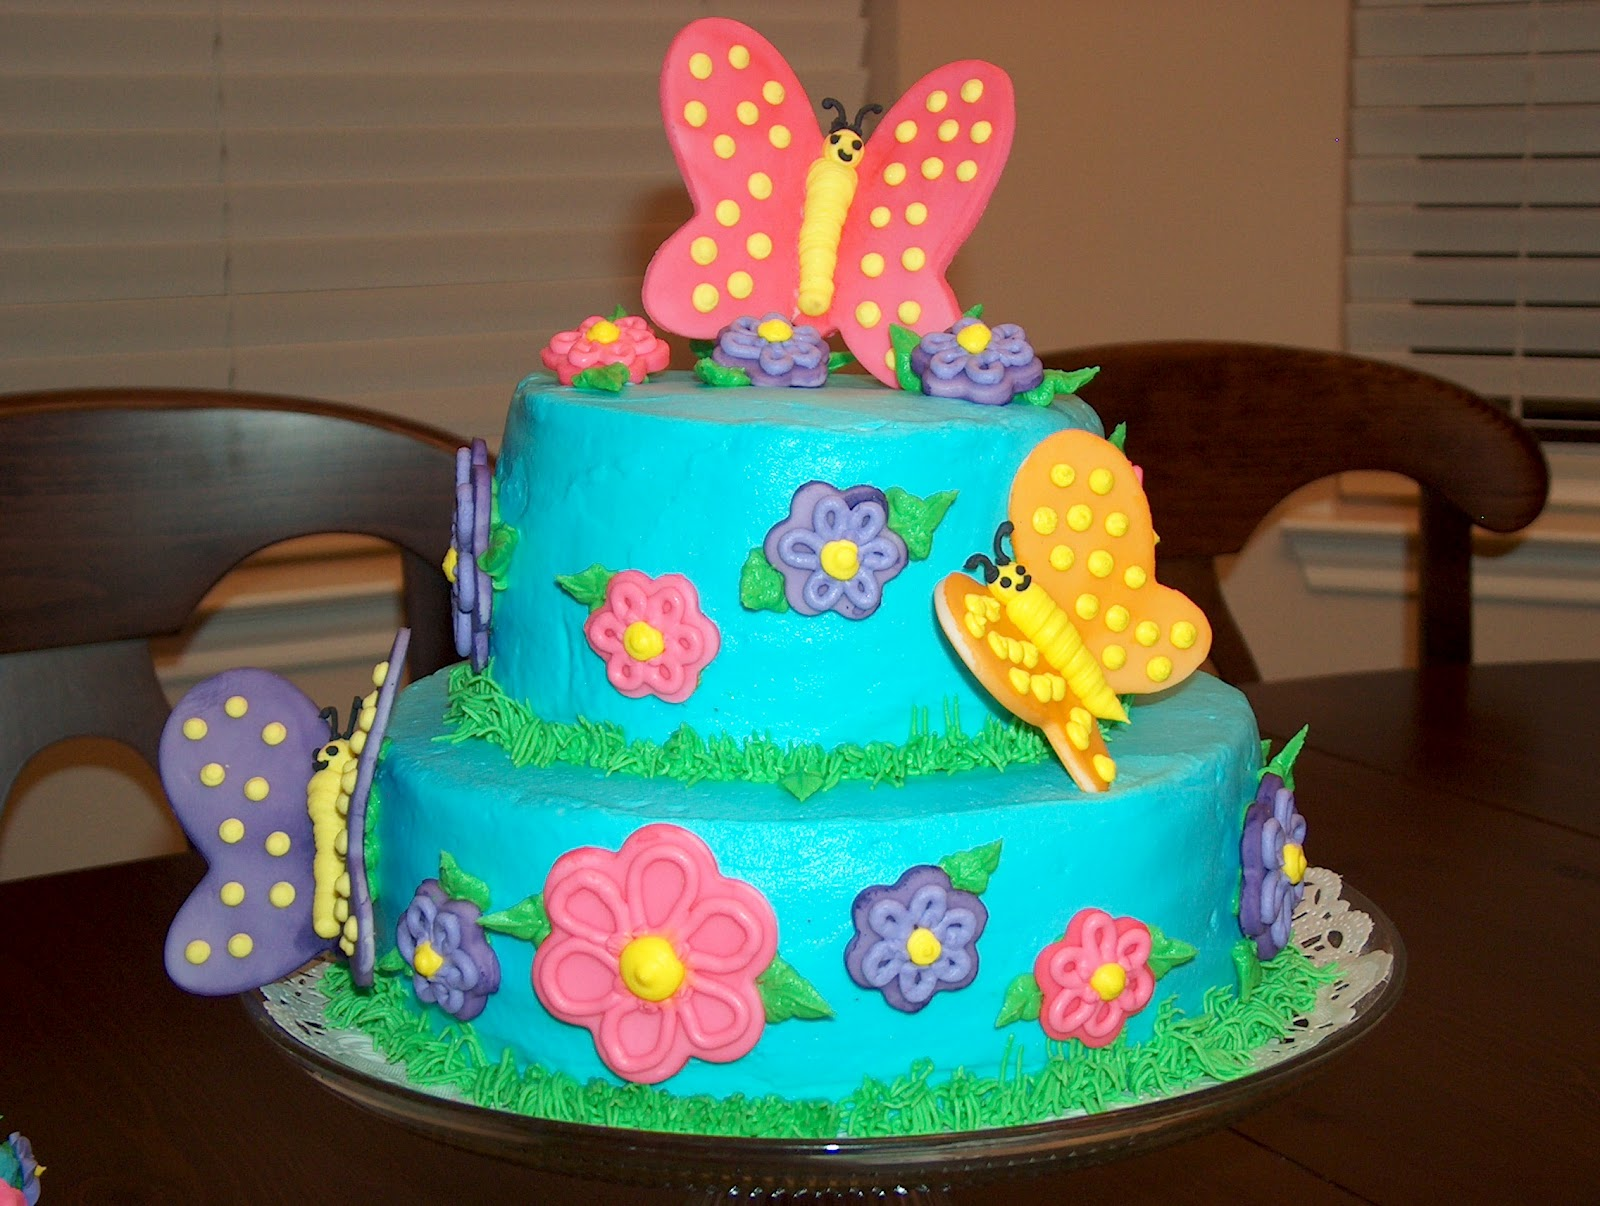 Themed Cakes, Birthday Cakes, Wedding Cakes: ButterFly ...